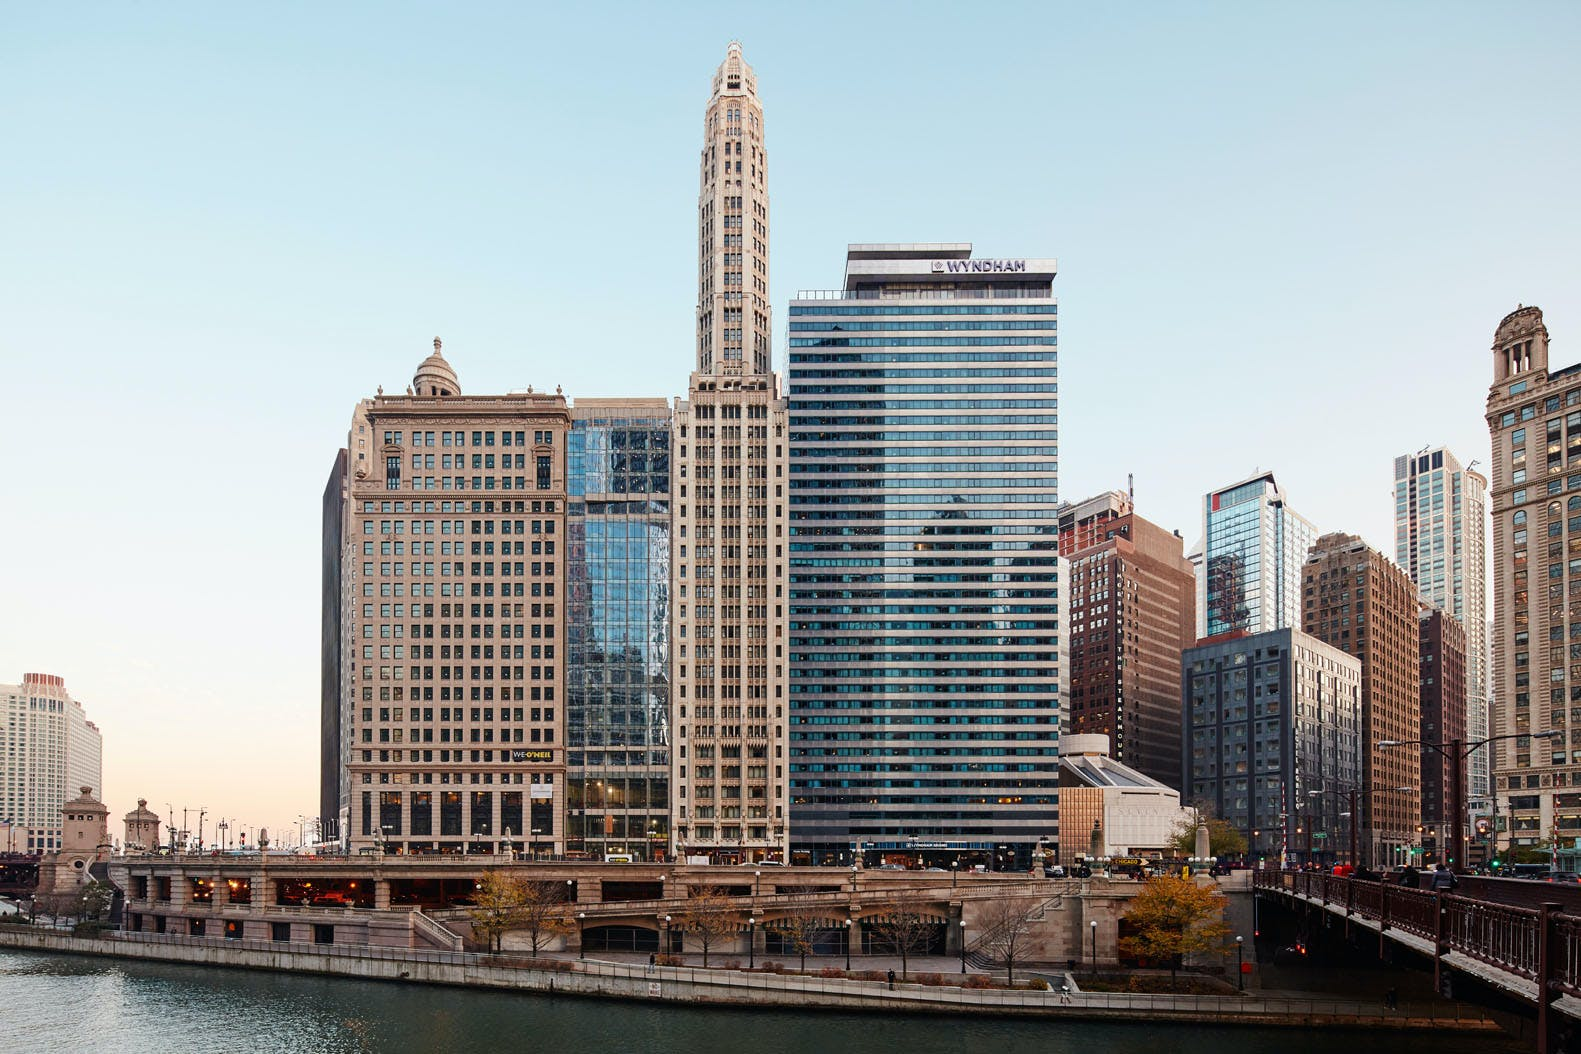 Chicago Riverfront, Club Quarters Hotel, Wacker at Michigan